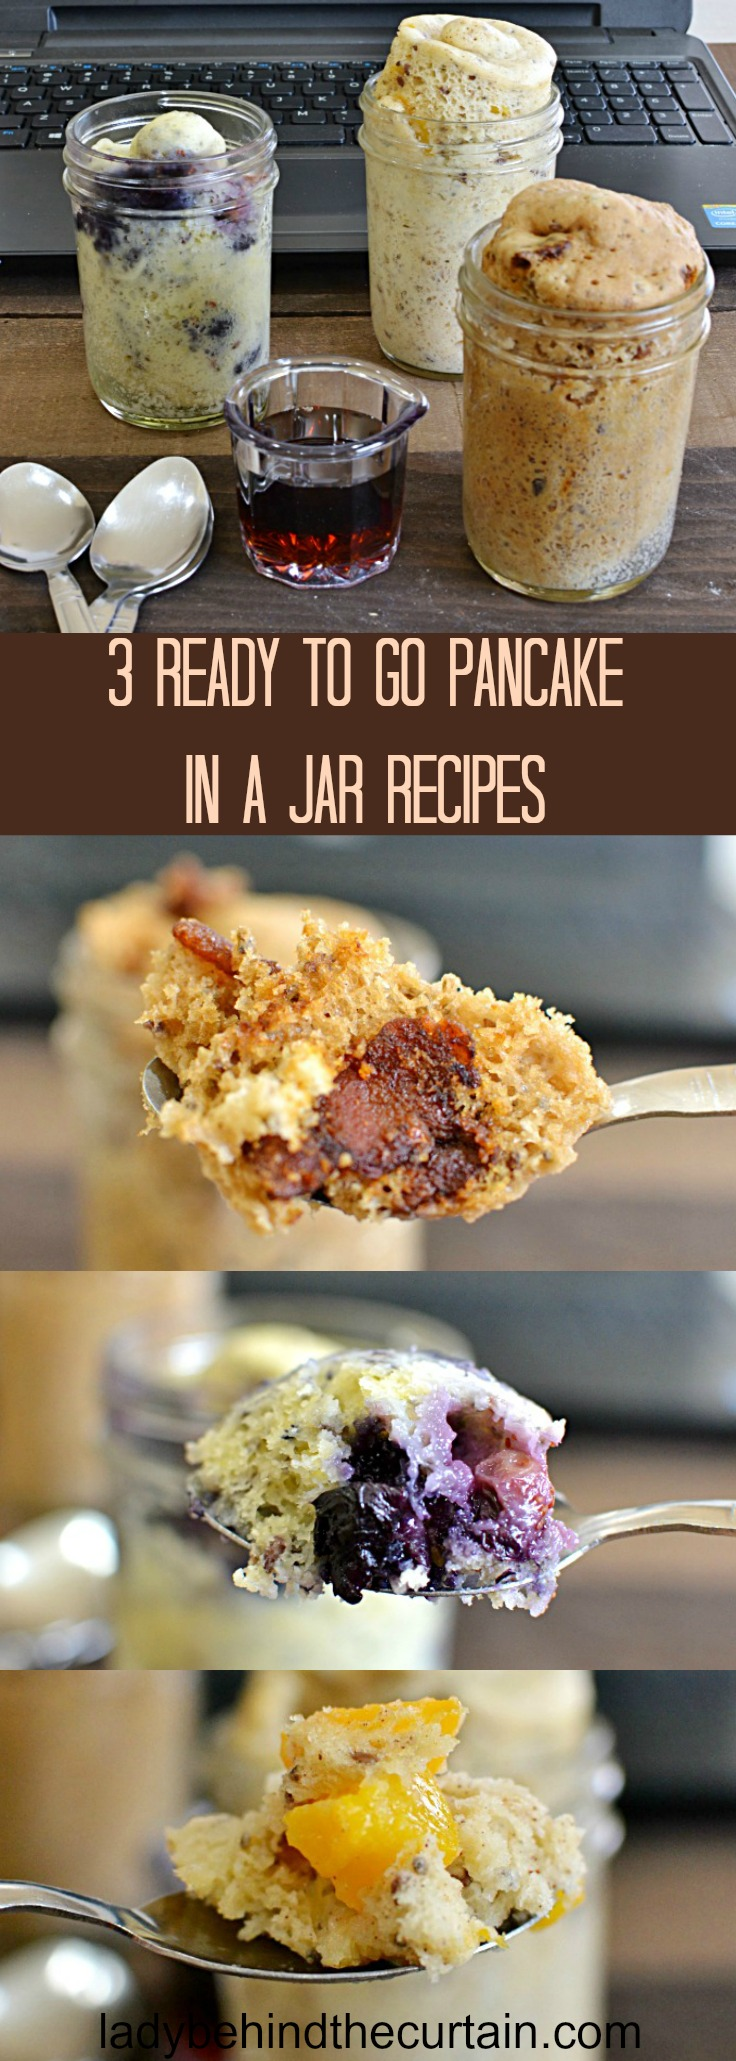 3 Ready To Go Pancake In A Jar Recipes | grab and go breakfast, easy breakfast recipe, easy pancake recipe, breakfast for dinner